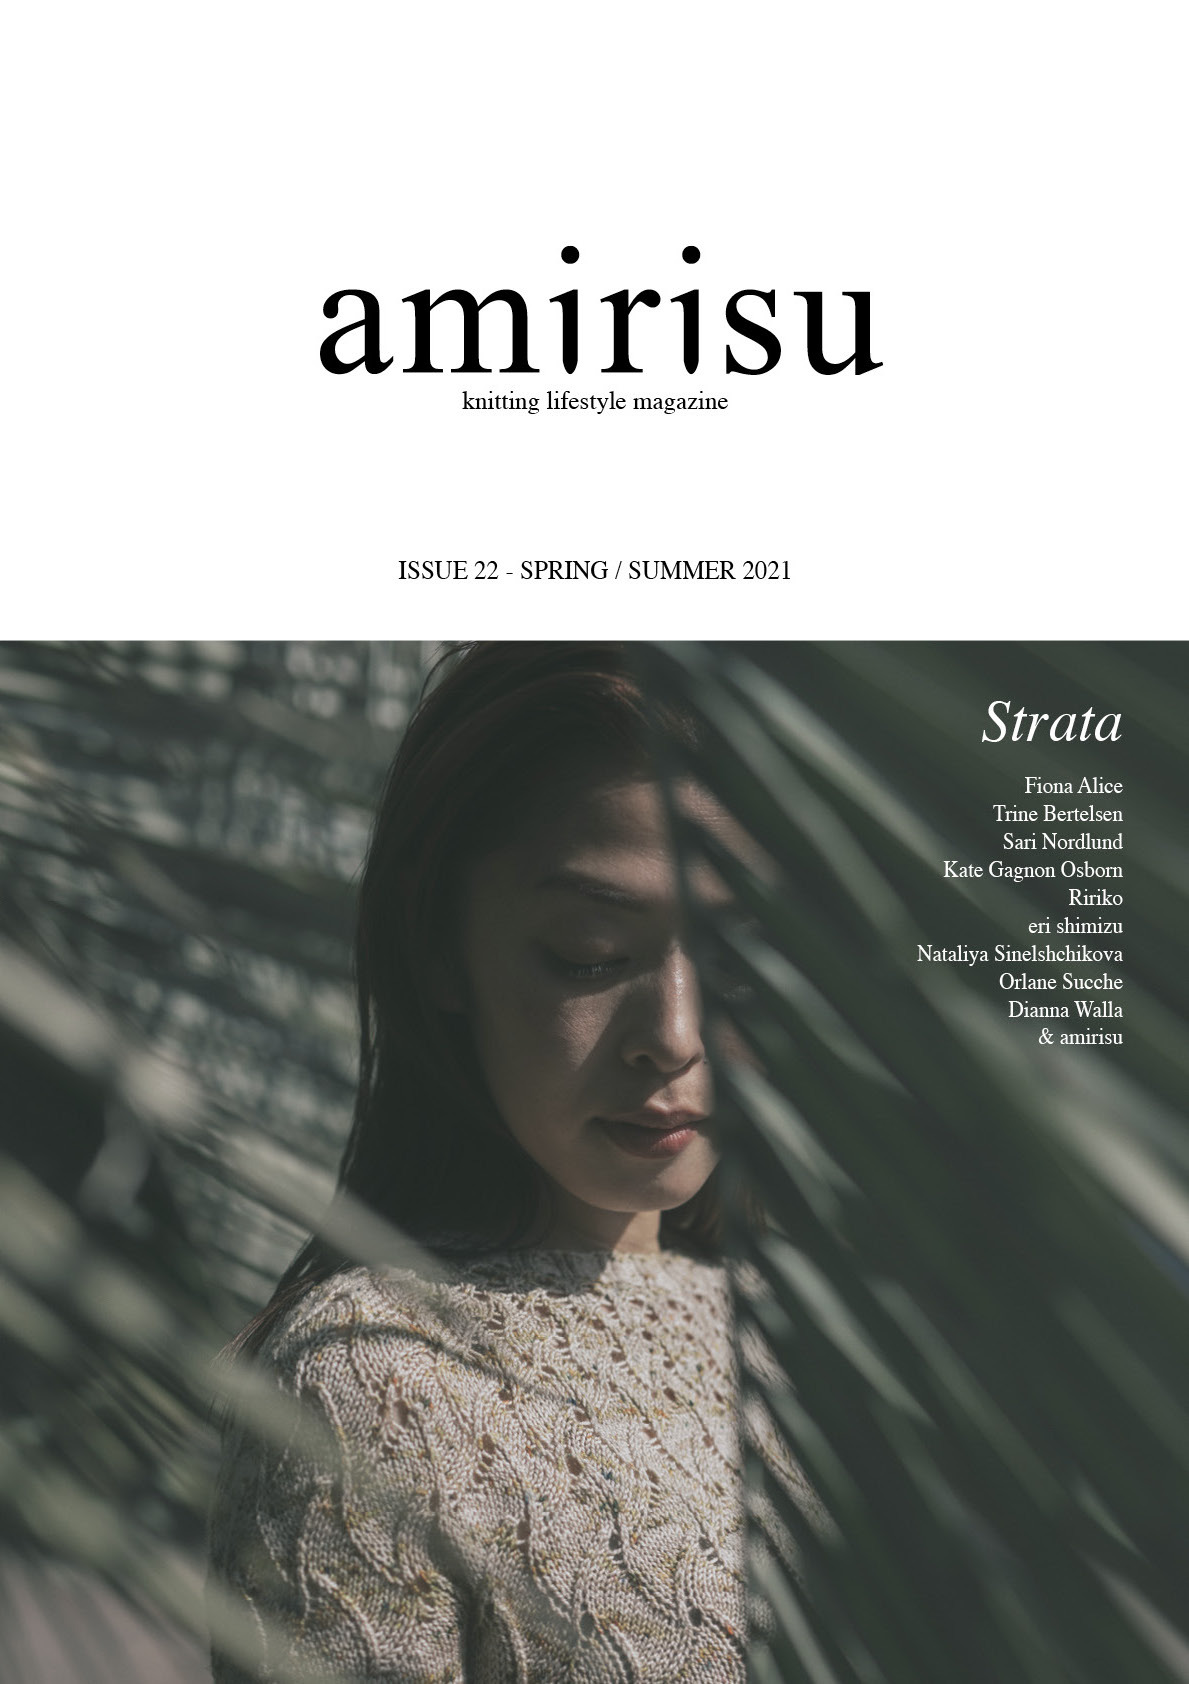 What to knit from the new issue of Amirisu